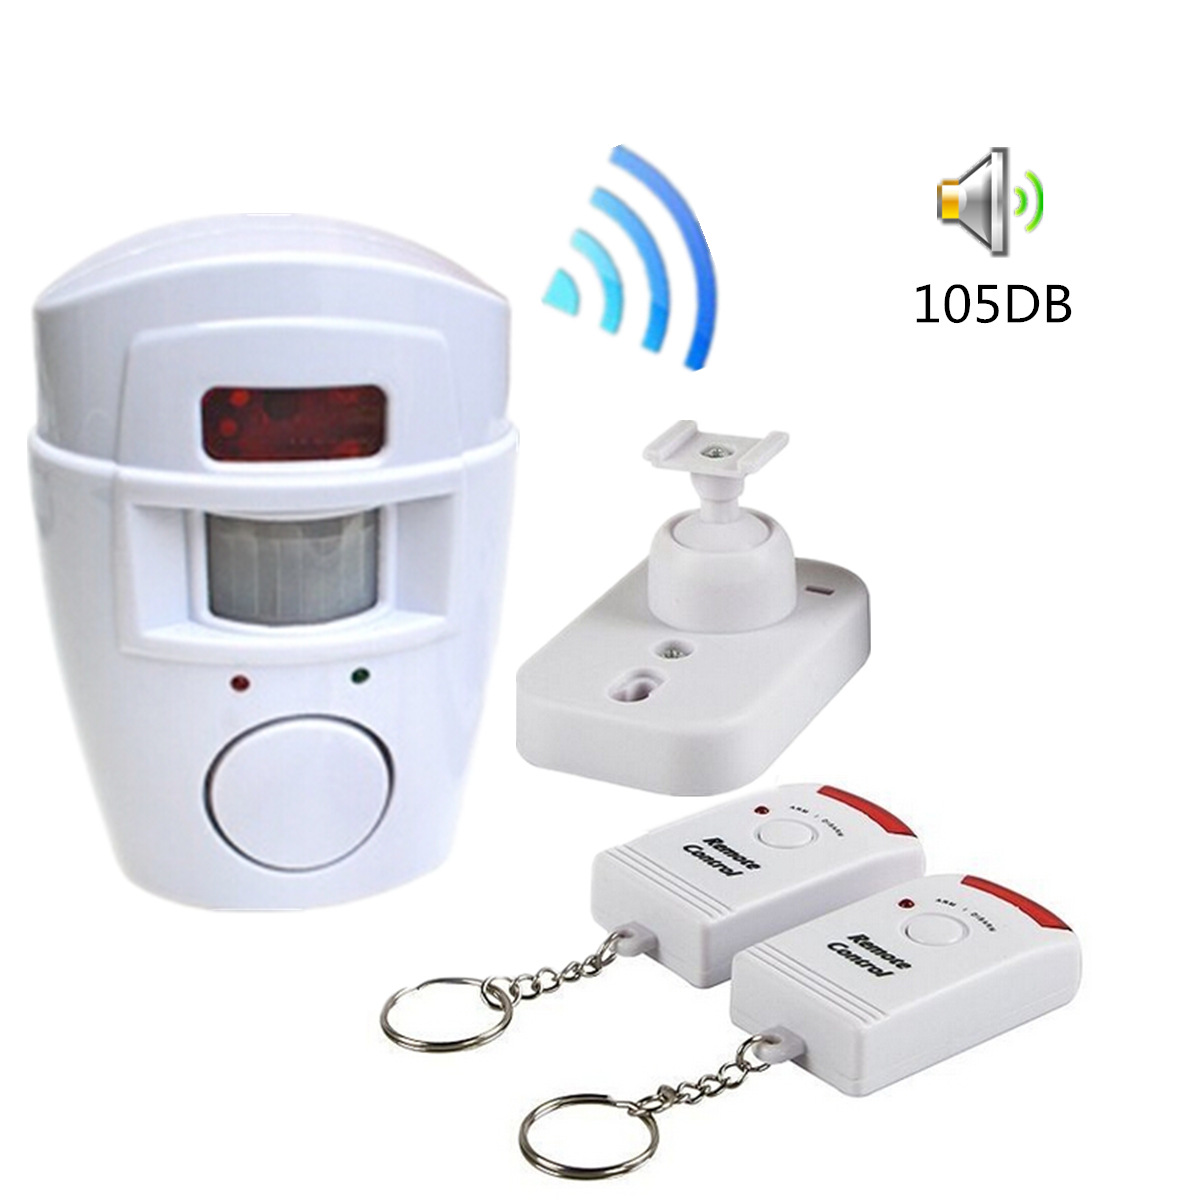 Home Security Alert Infrared Sensor Anti-theft Motion Detector Alarm Monitor Wireless Alarm system 2 remote control